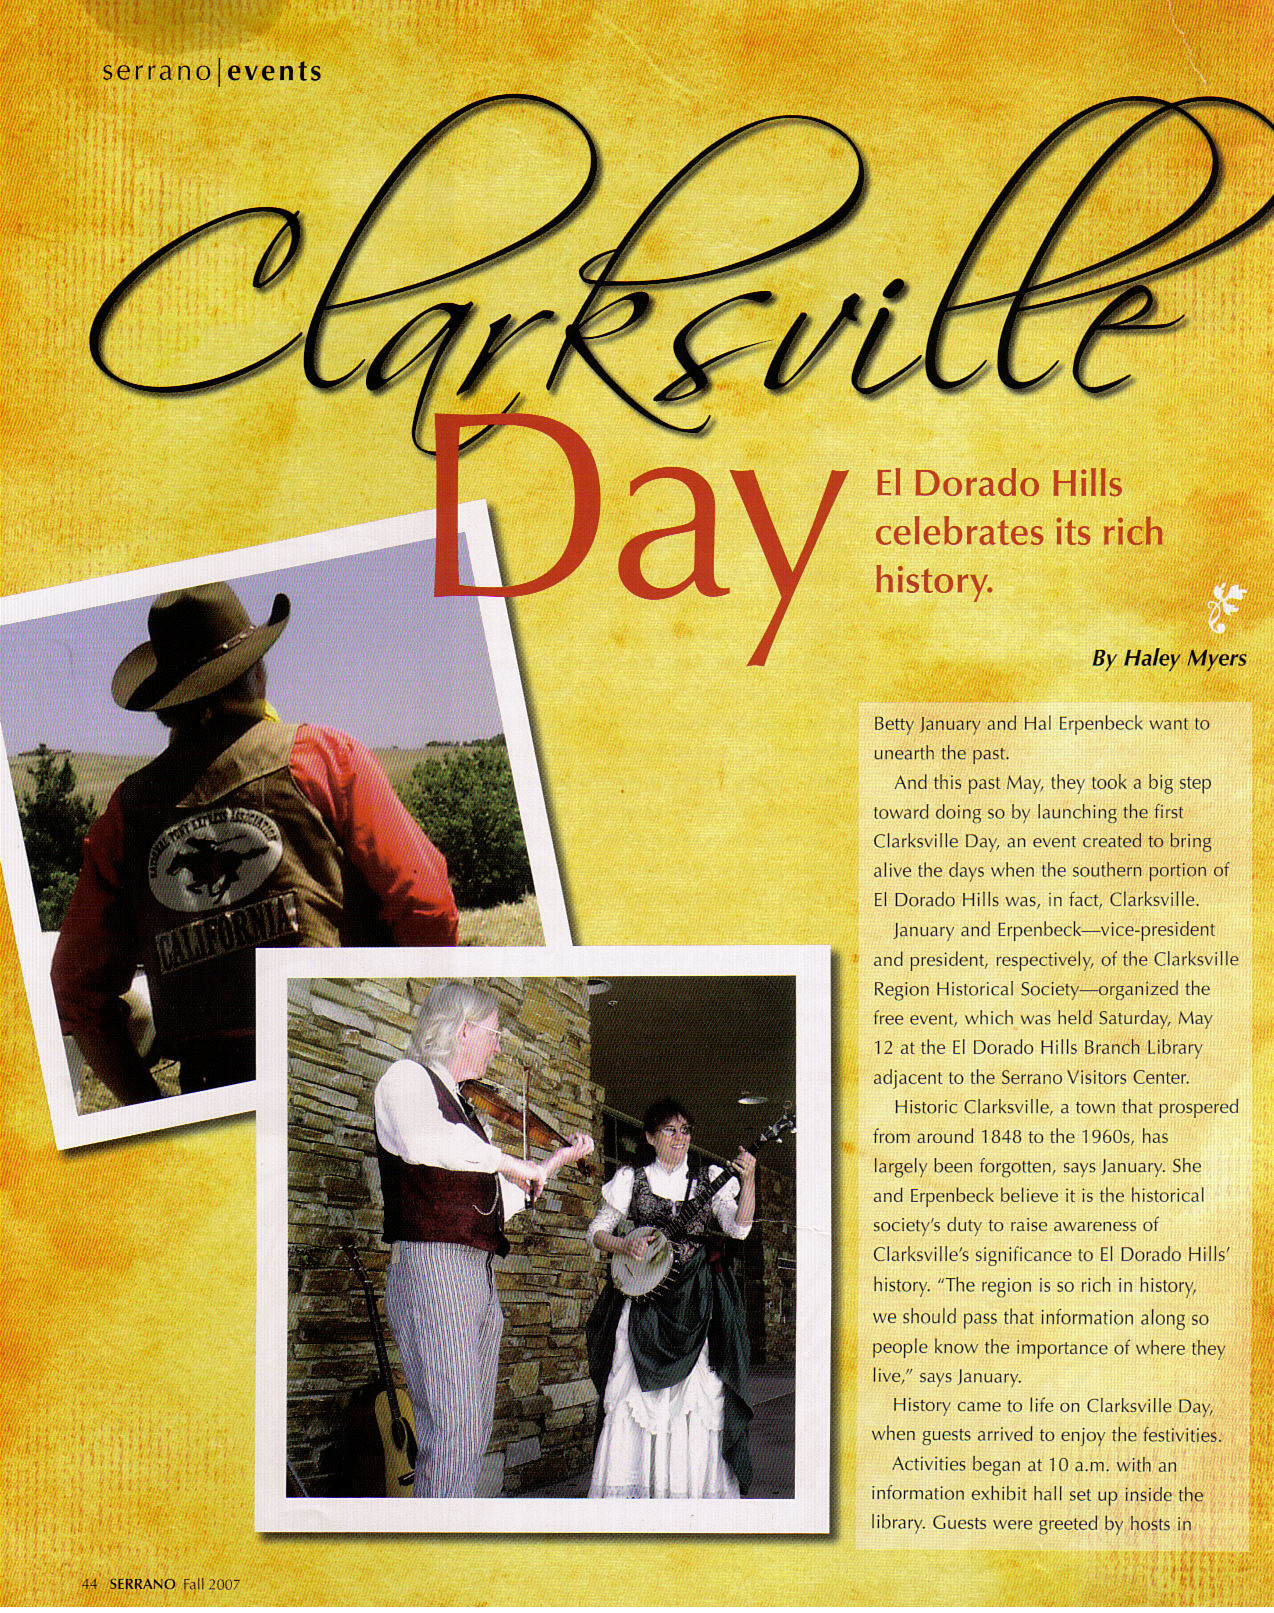 2007 Clarksville Day article